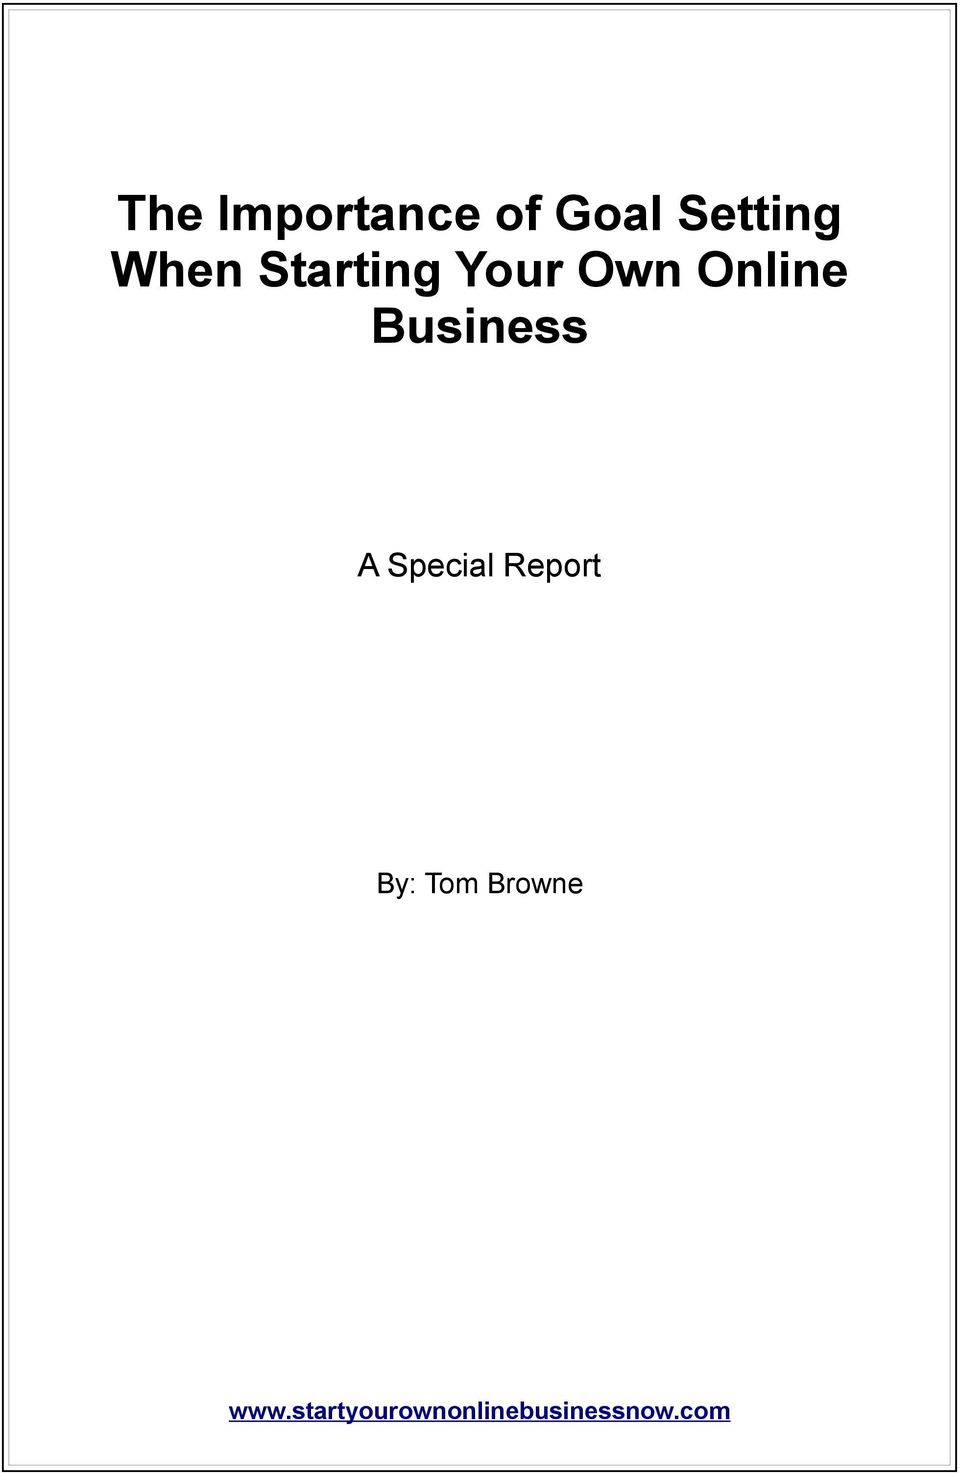 Your Own Online Business